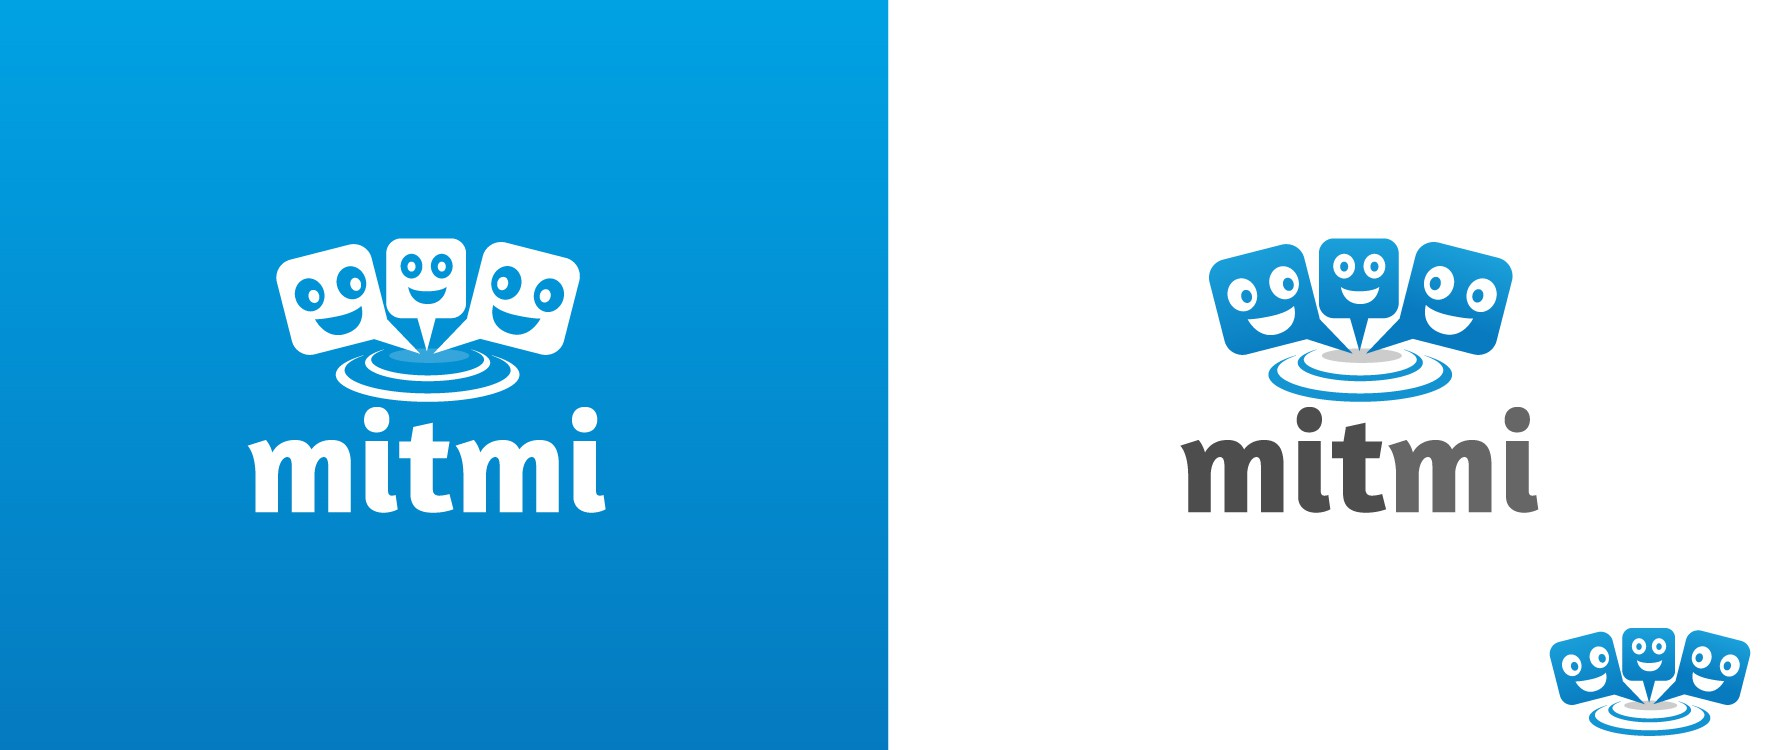 "logo for MITMI (Comes from the expression ""MEET ME"")"